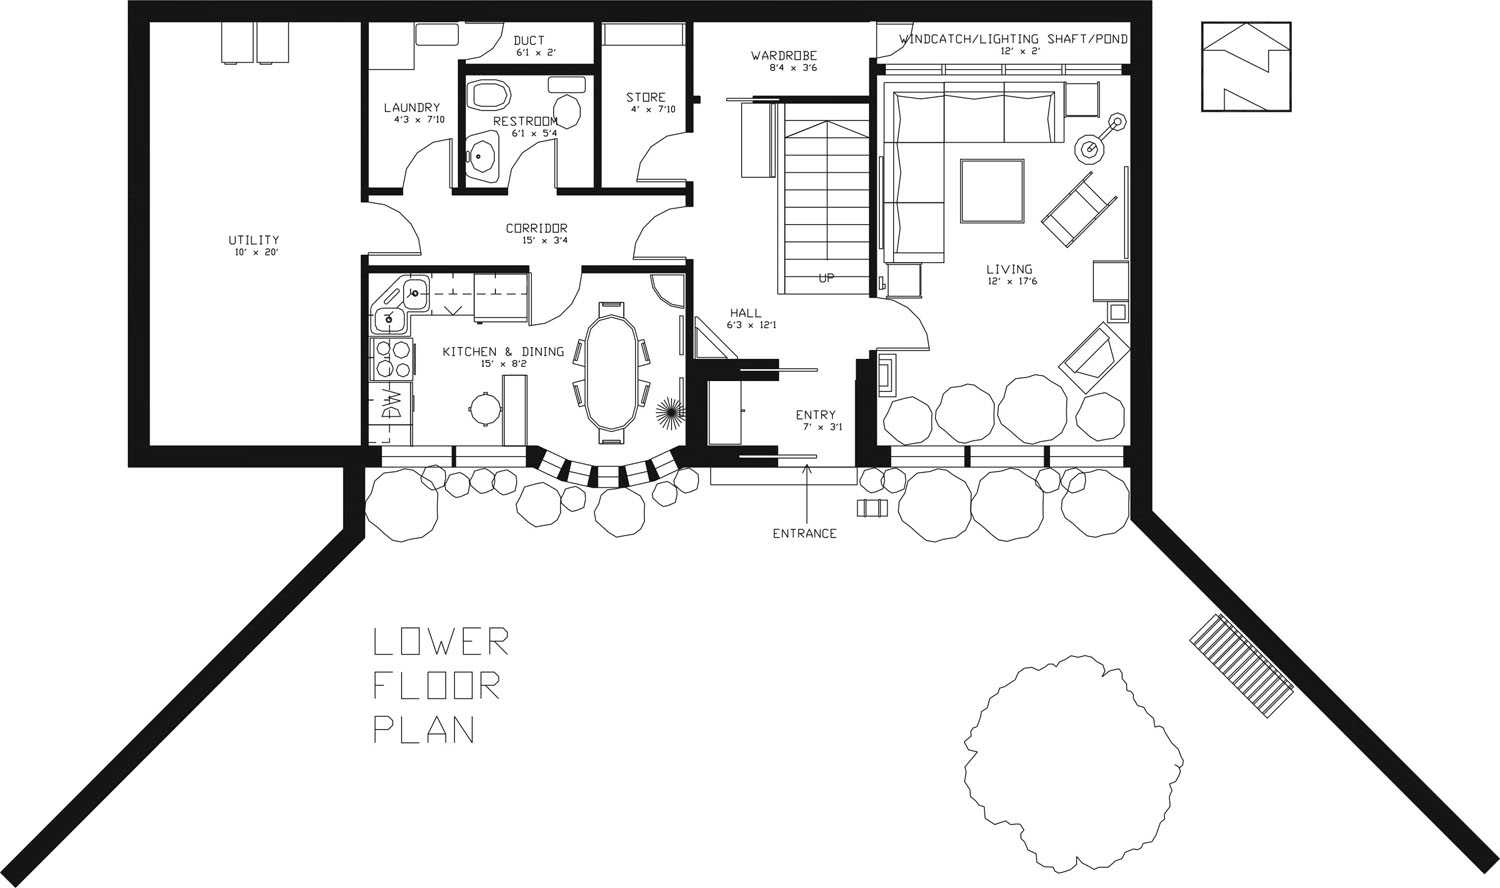 Underground home designs 18469 hd wallpapers background Underground home plans designs